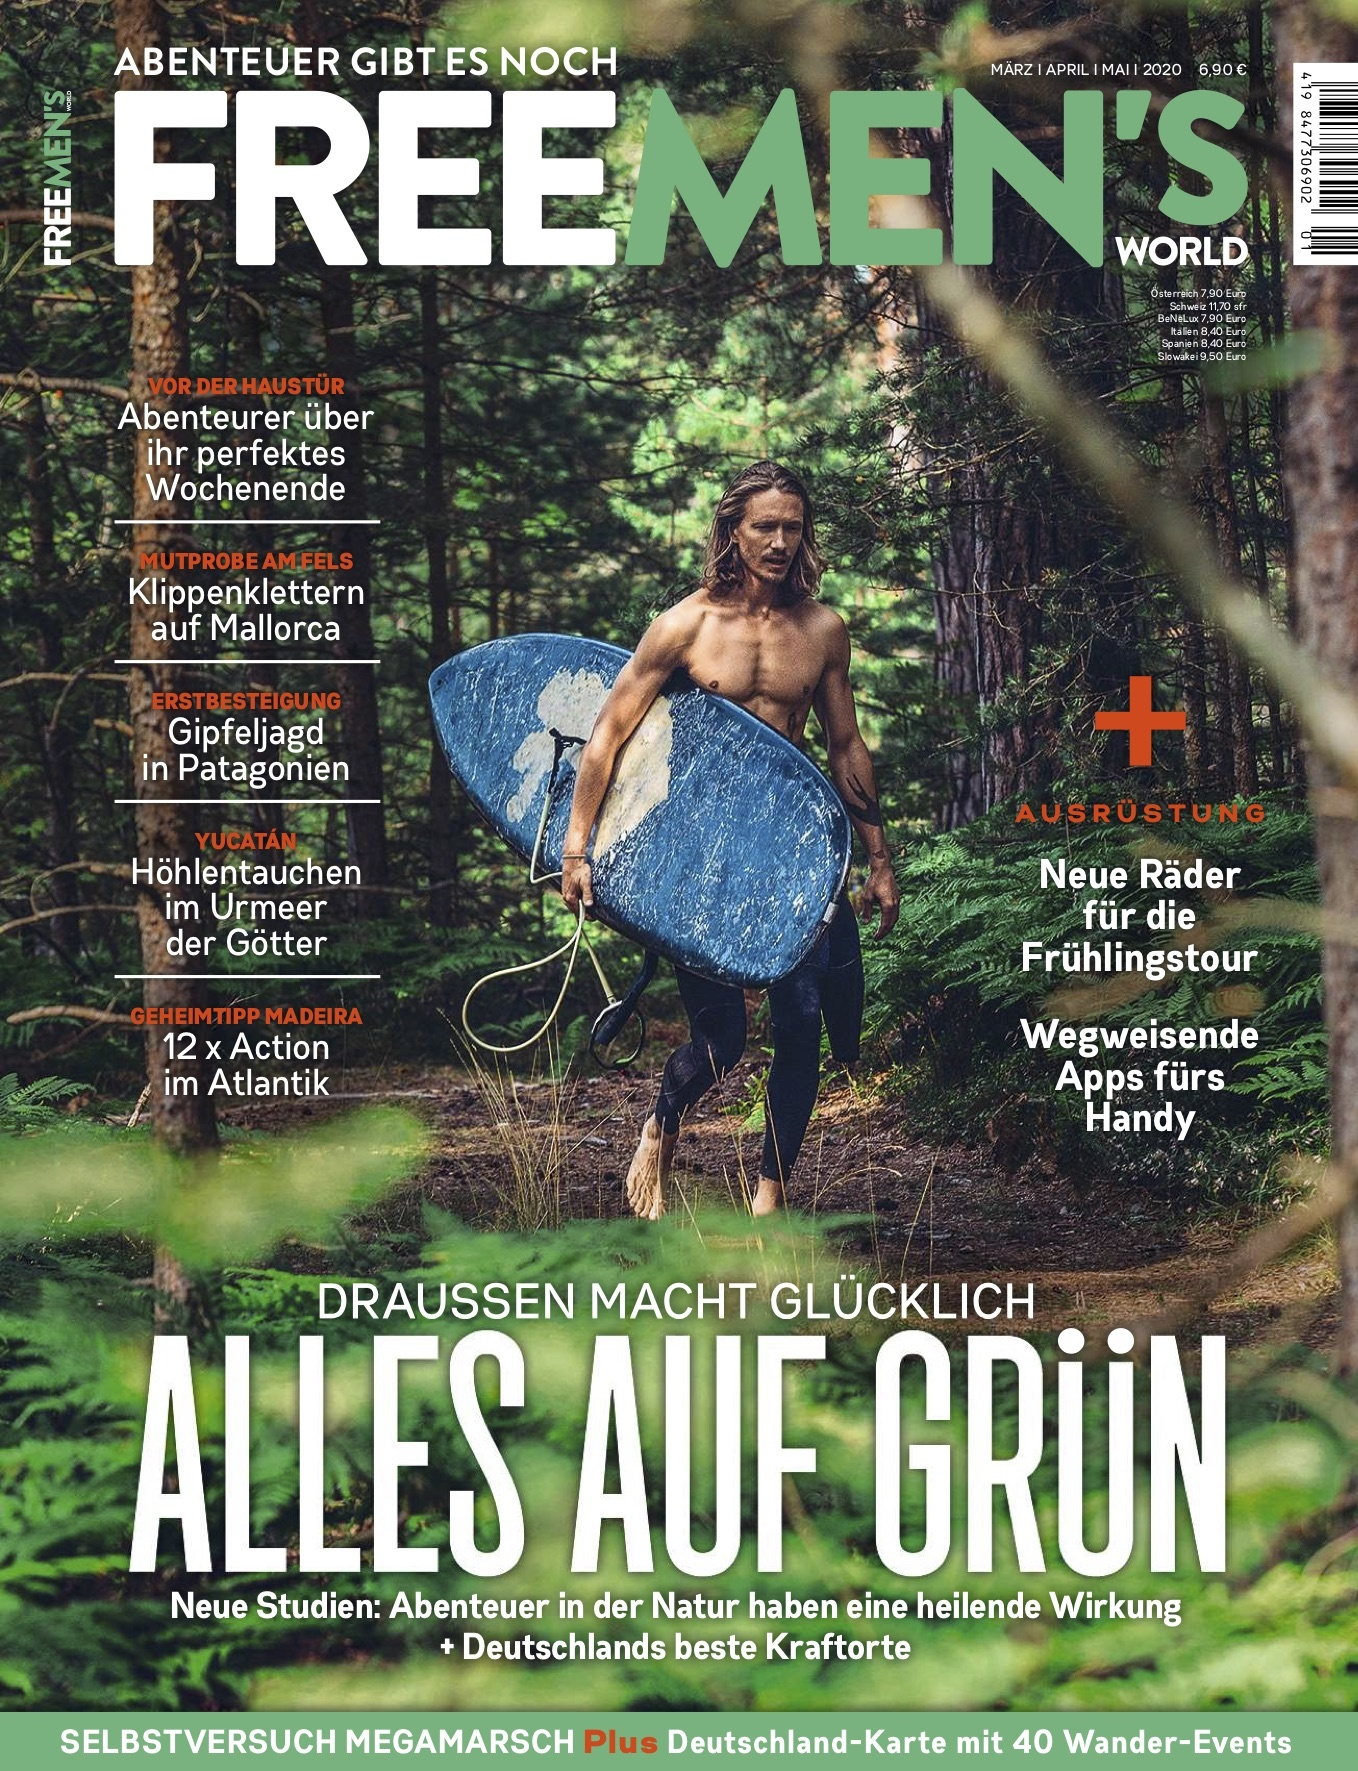 FREE MEN'S WORLD FREE MEN'S WORLD - Alles auf Grün